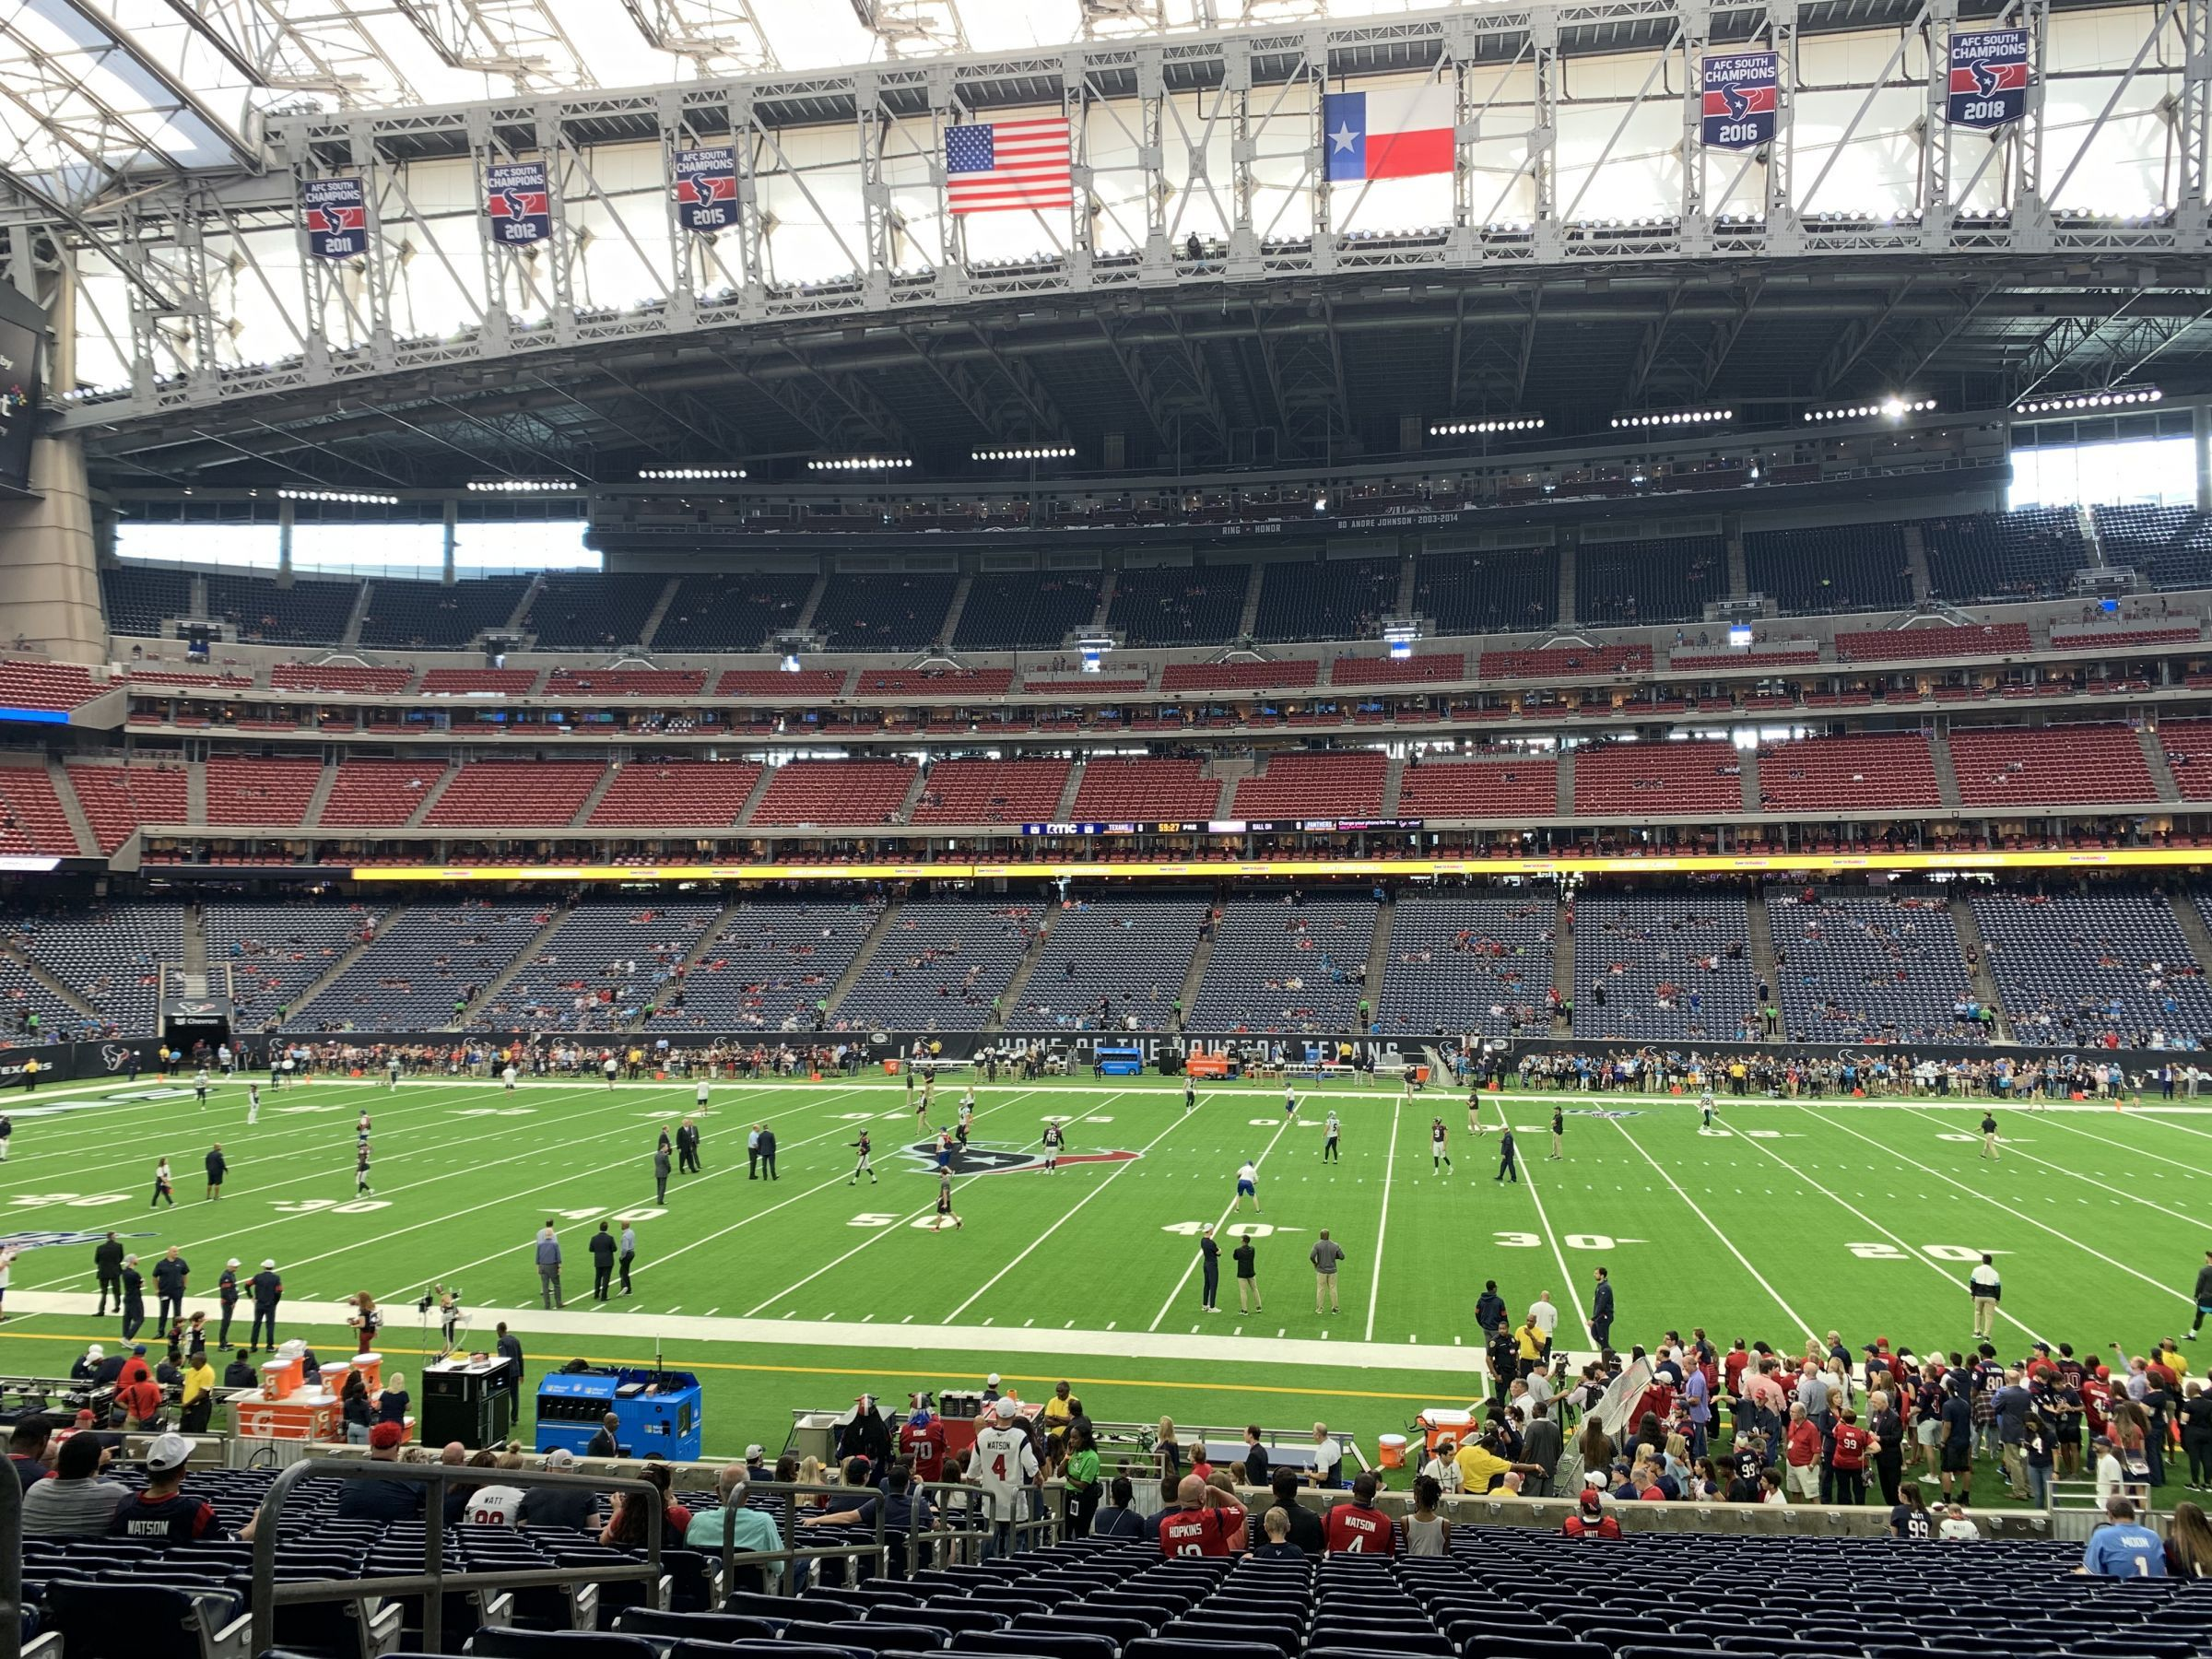 Section 105 seat view